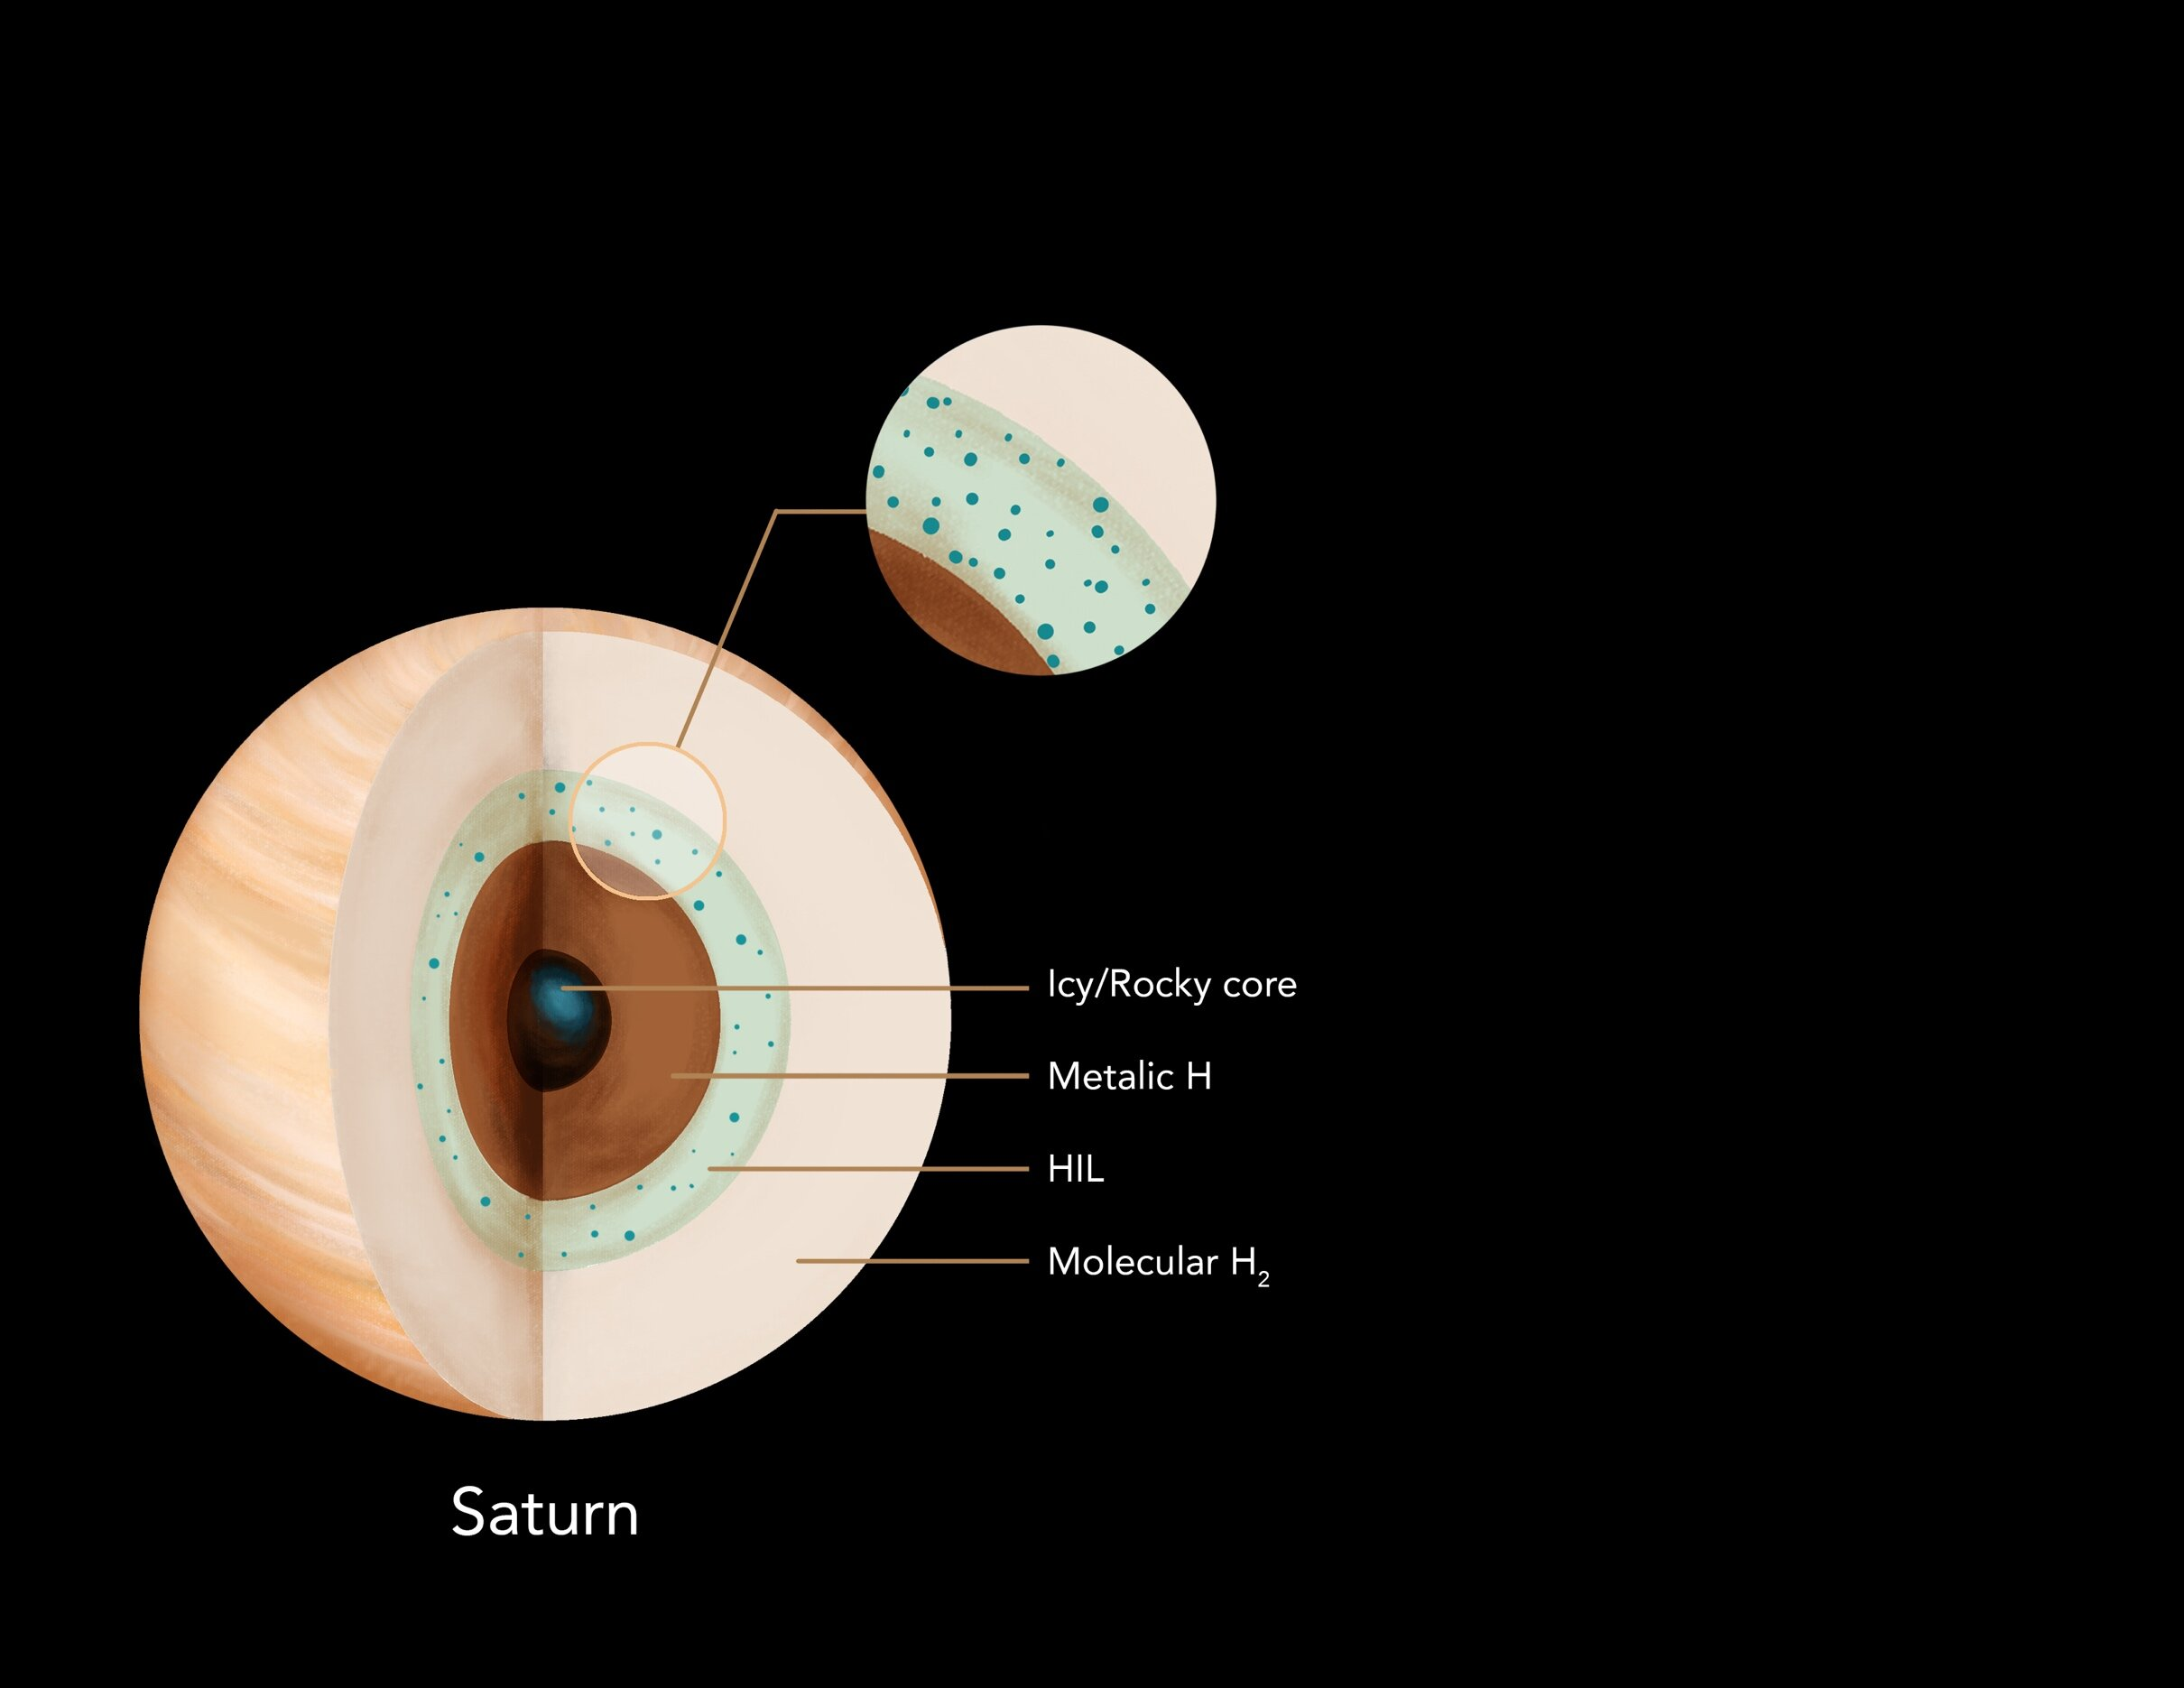 Scientists model Saturn's interior